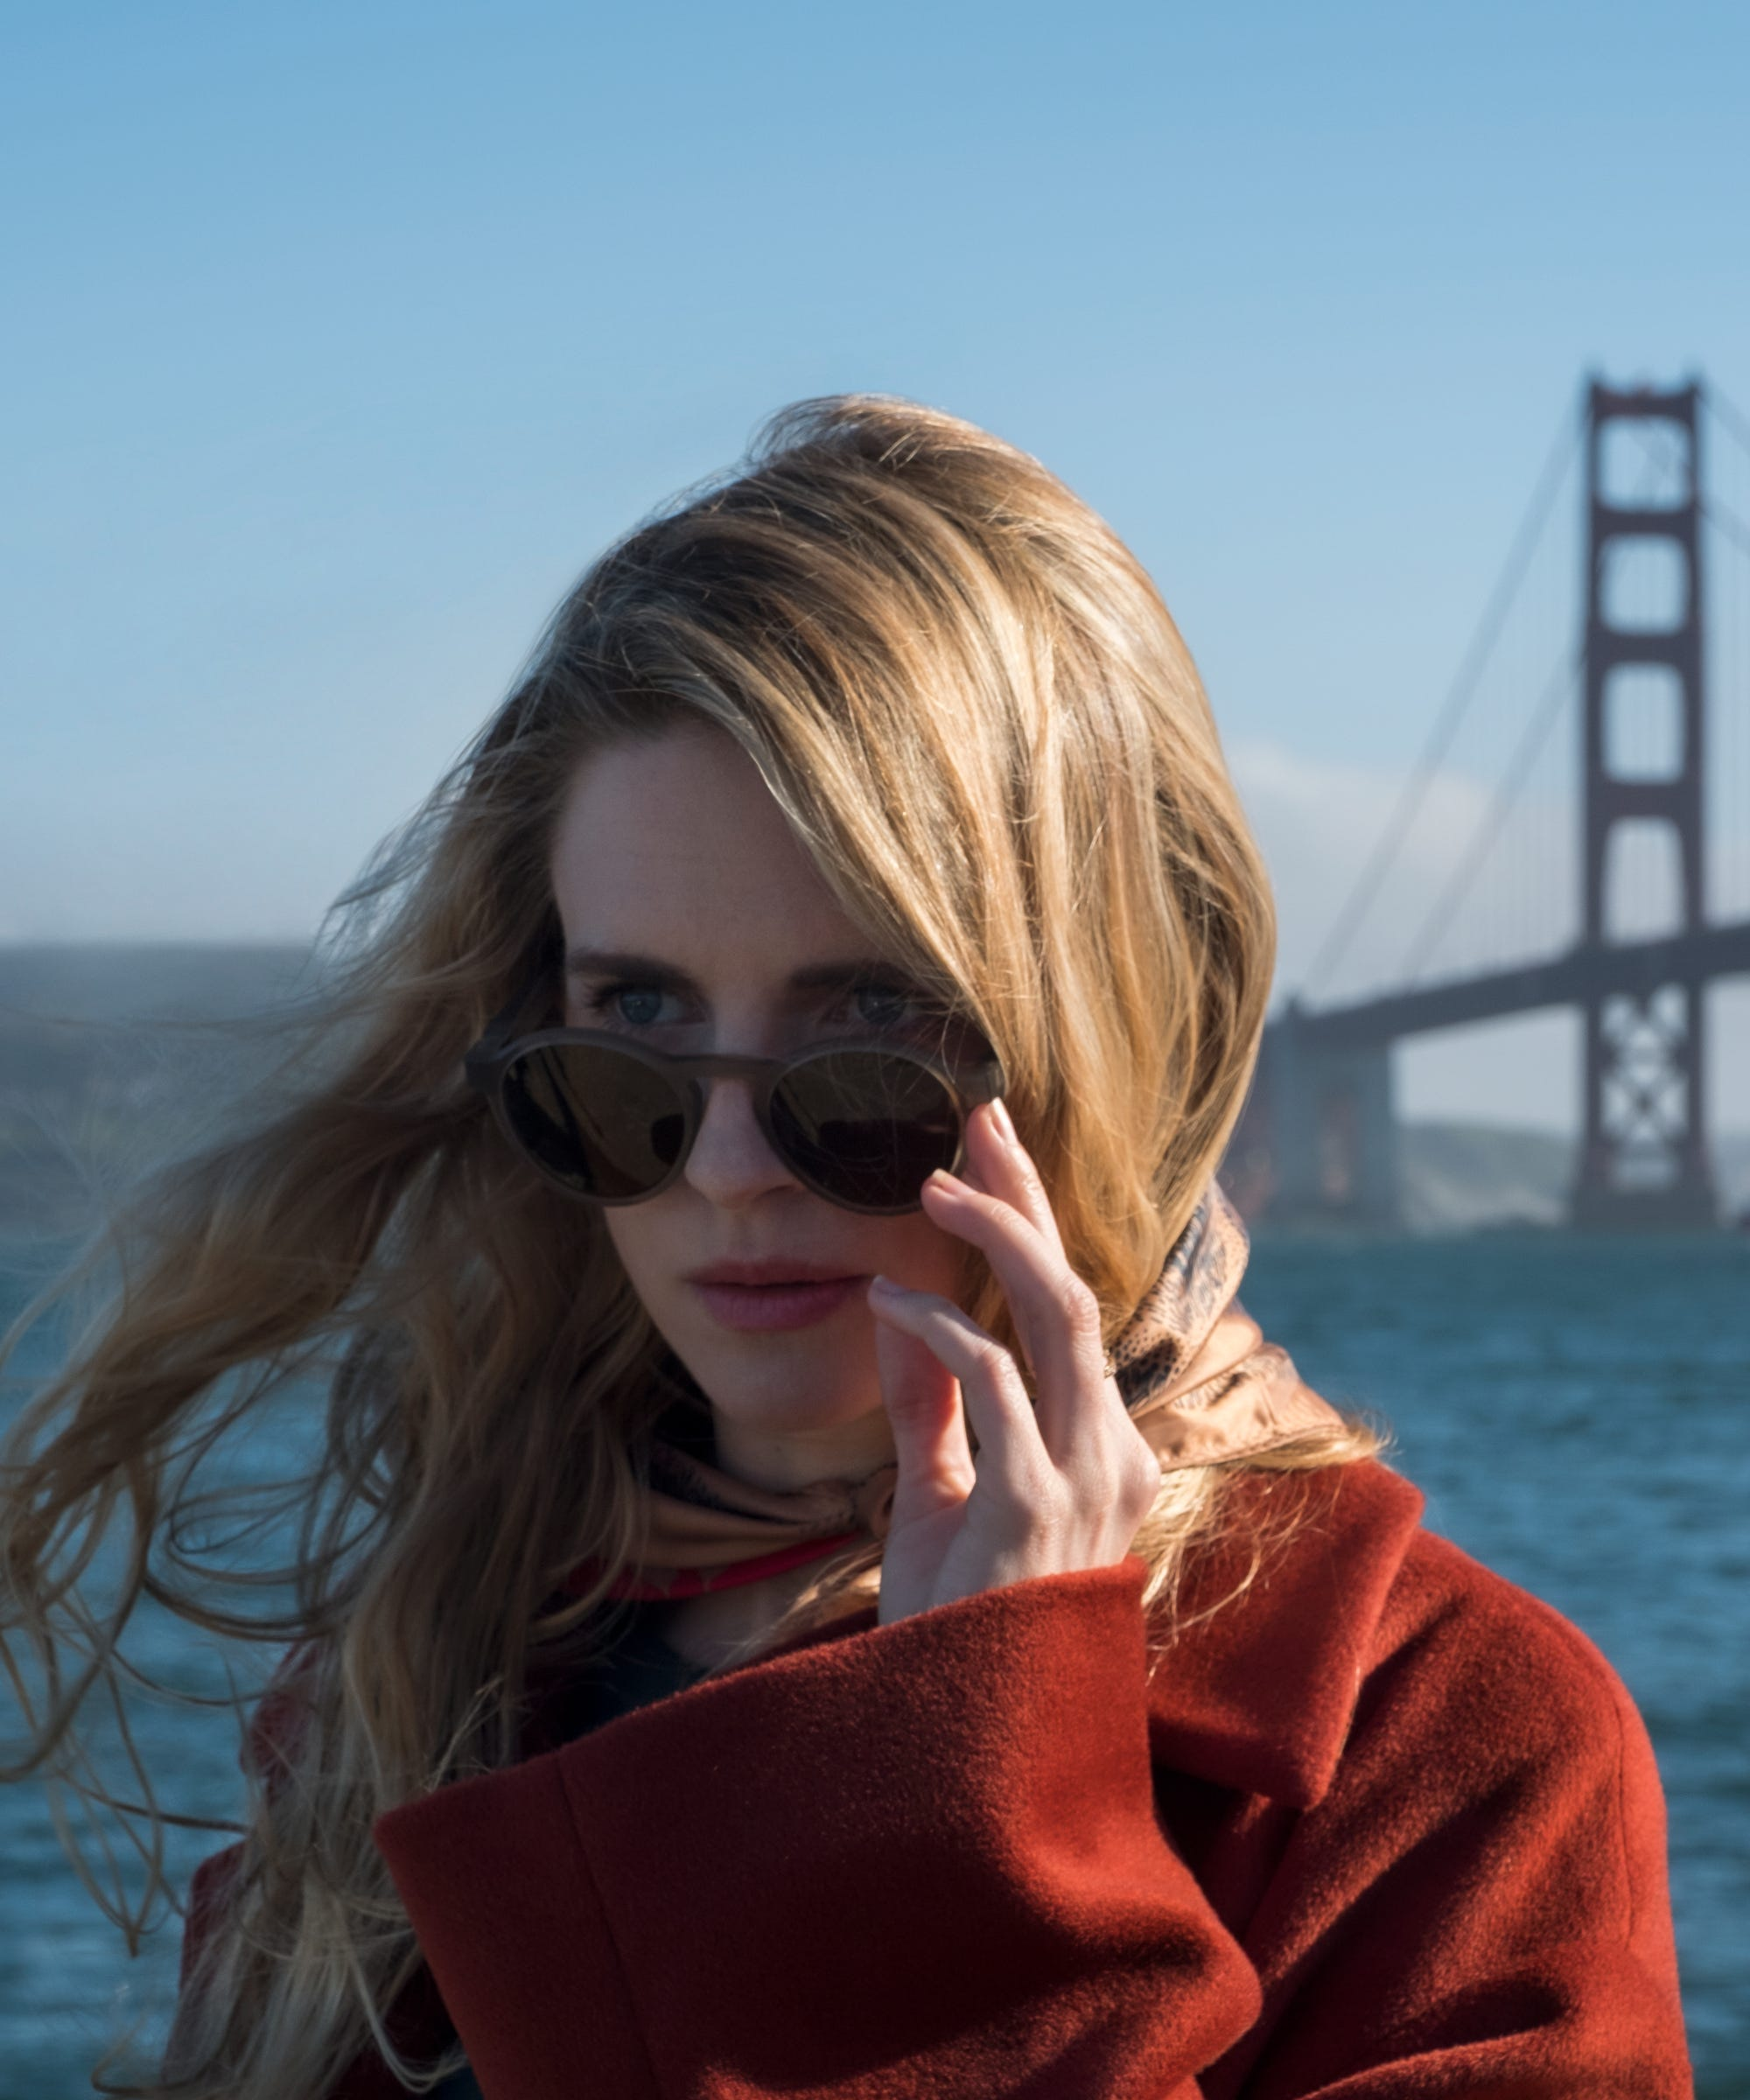 How The Heck Do The Dimensions Work On The OA?